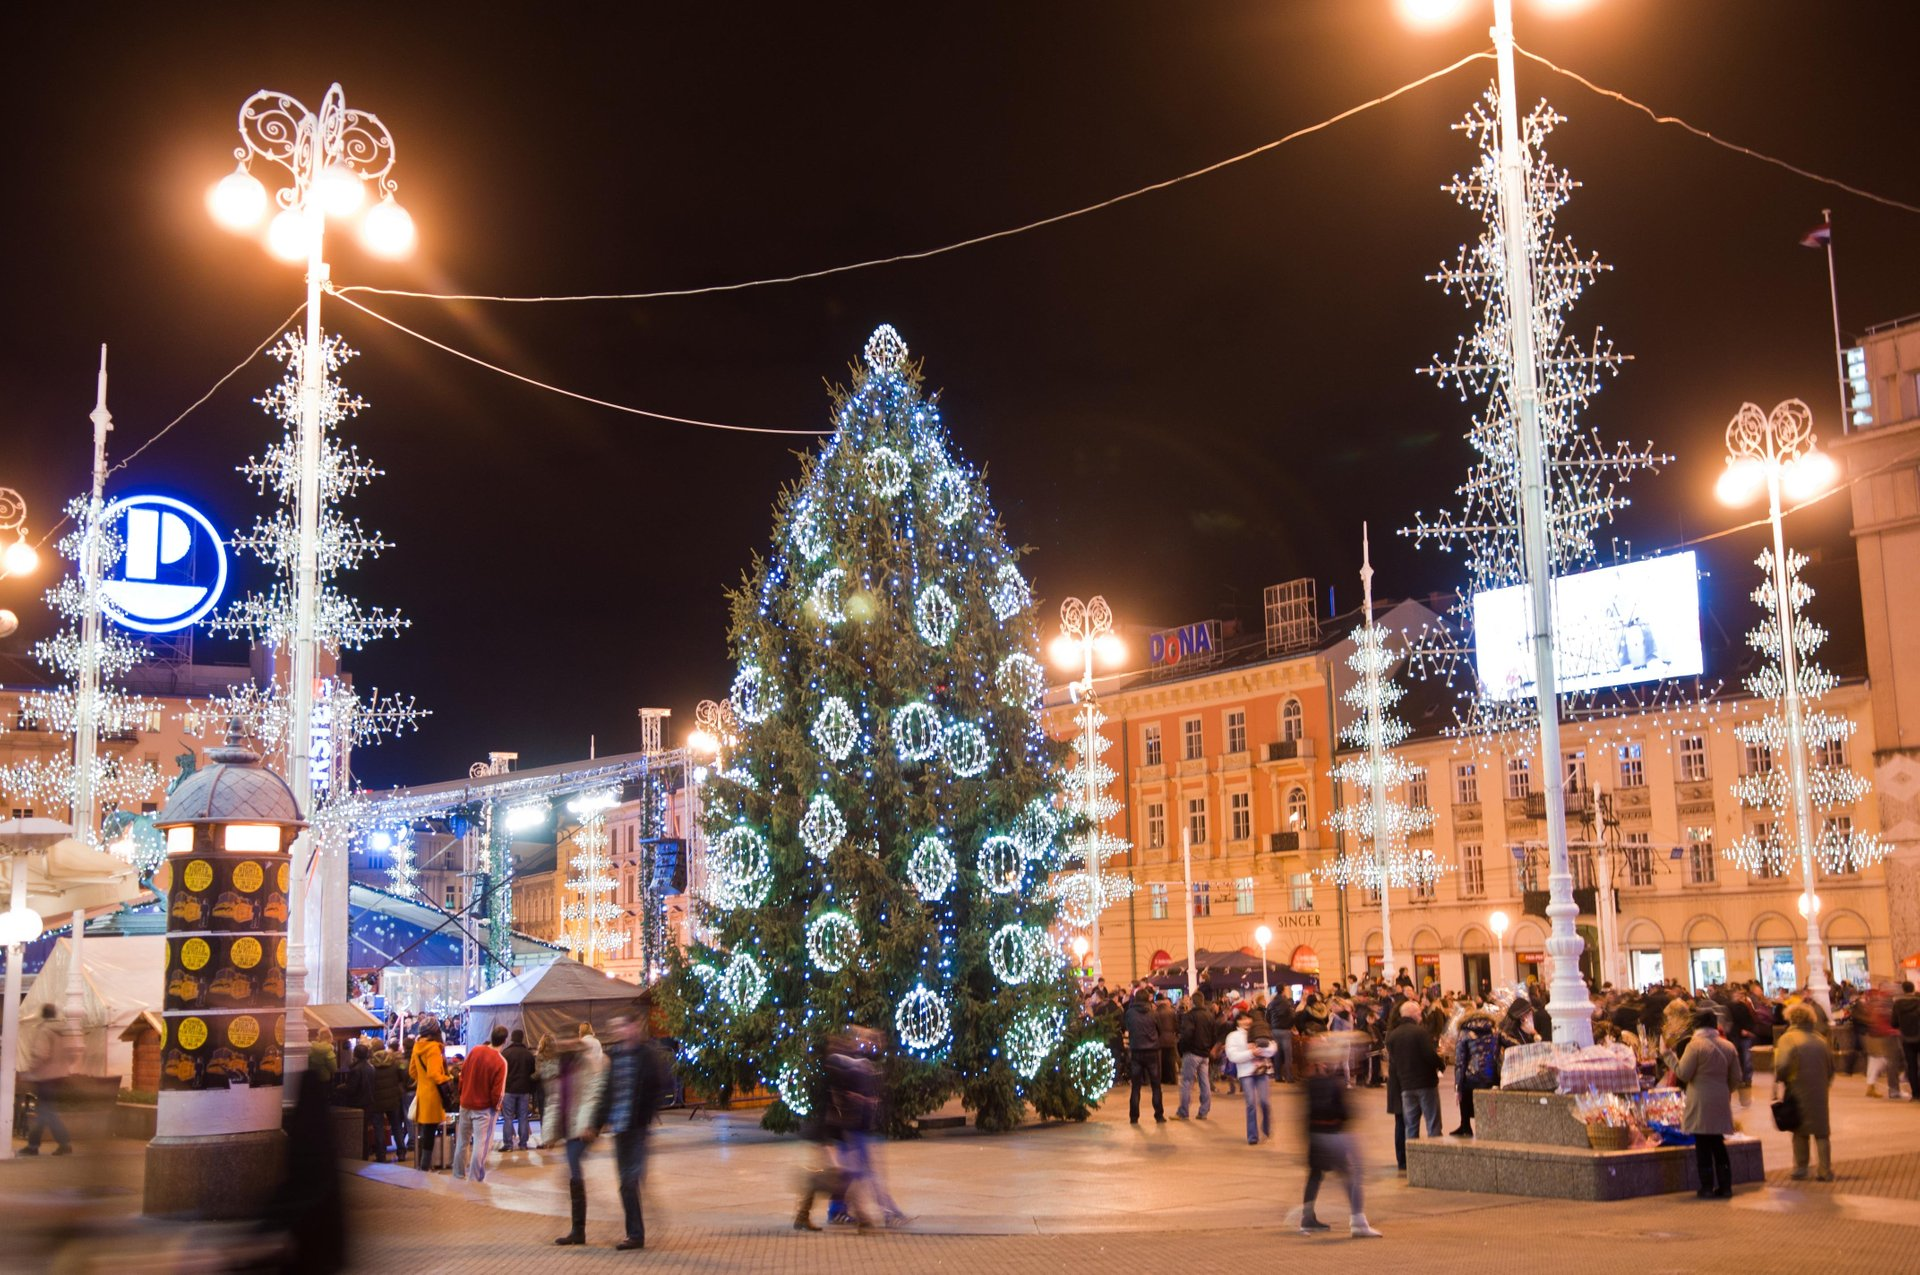 Zagreb Christmas Market in Croatia - Best Season 2019